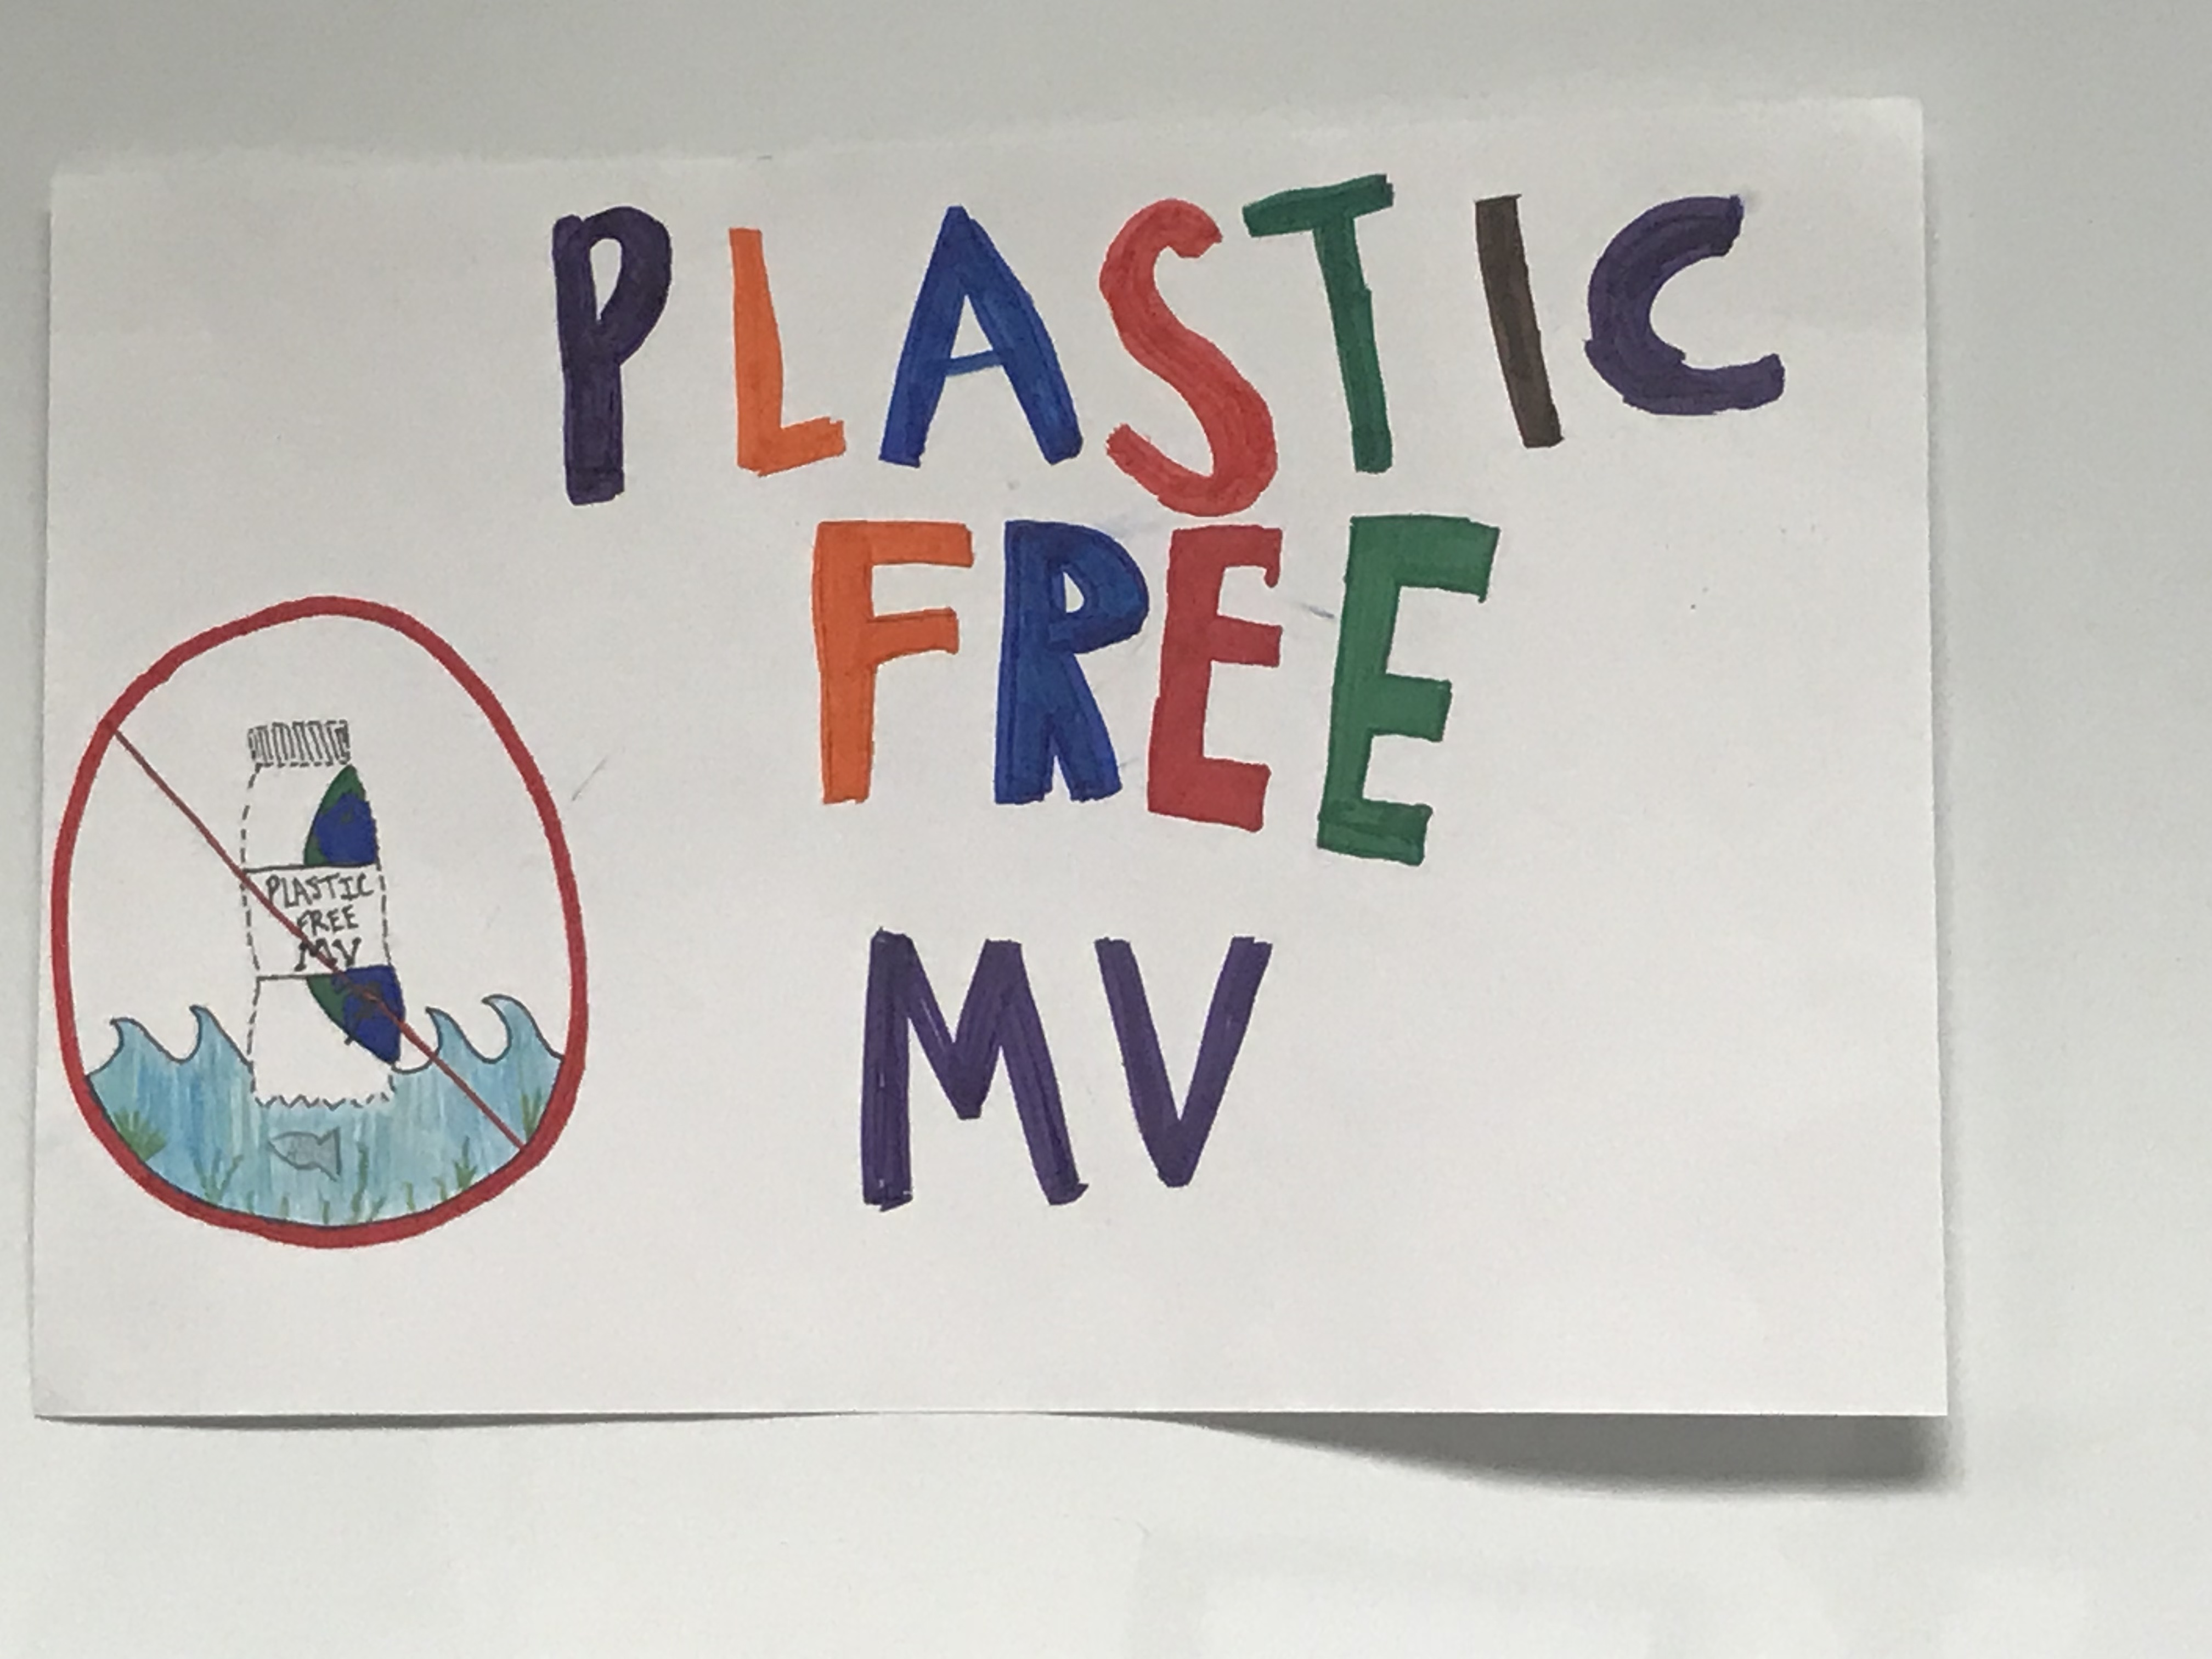 Plastic Bottle Discussion with Plastic Free MV | West